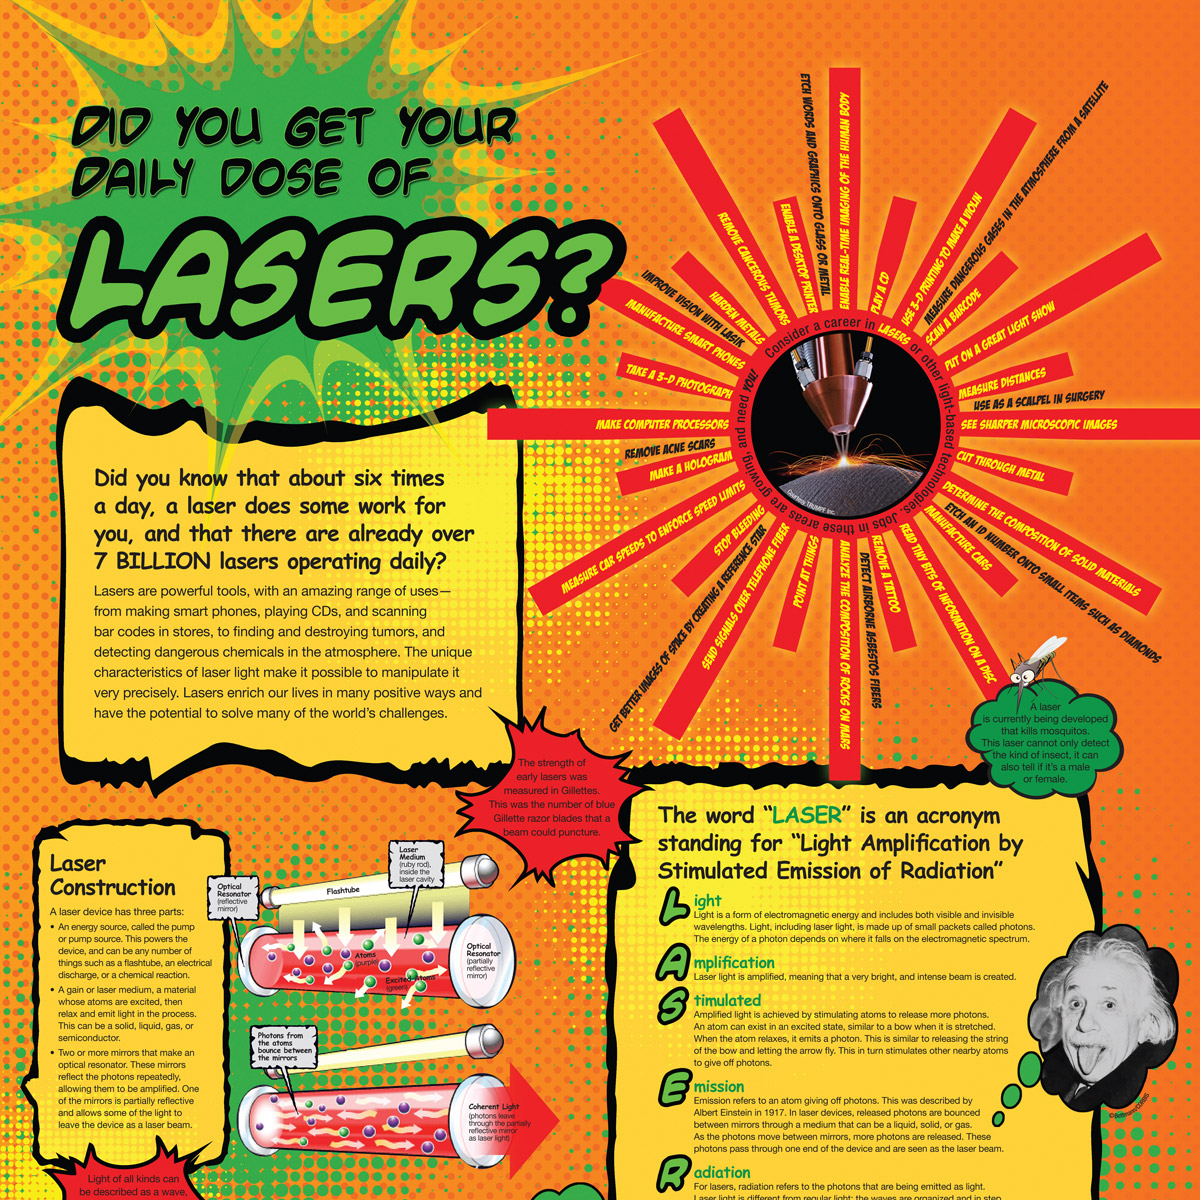 Free optics and photonics posters for public awareness   SPIE